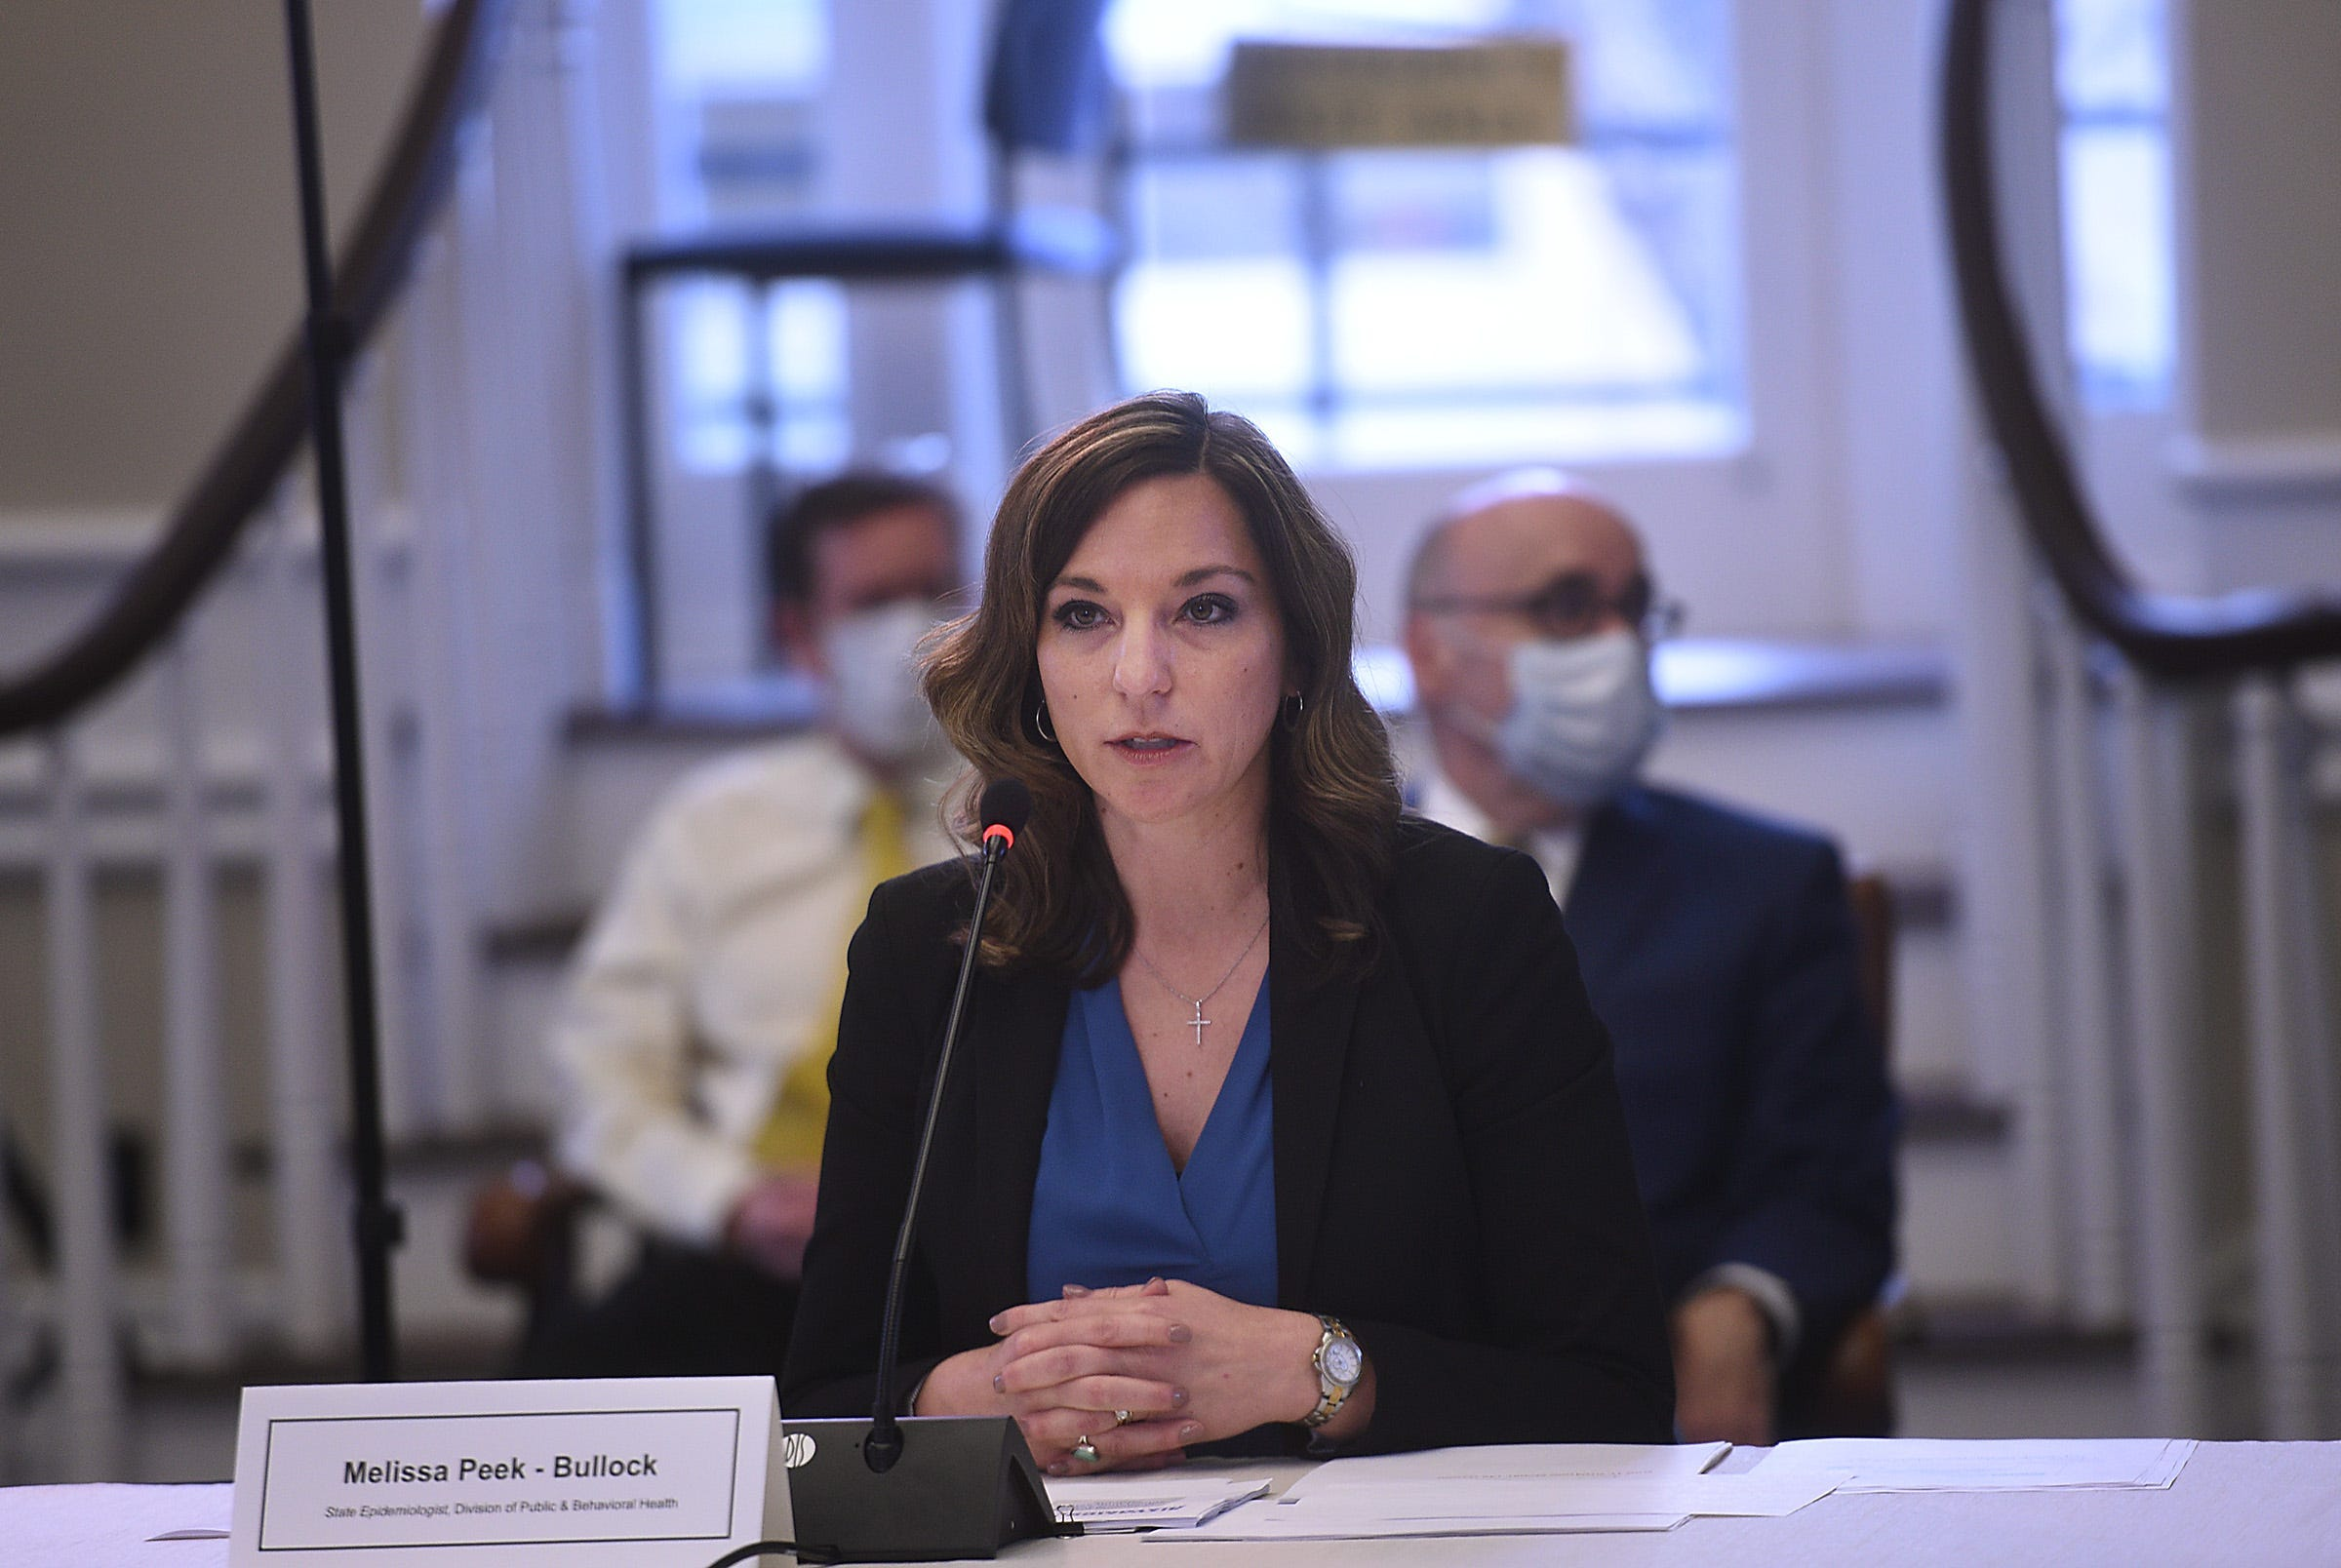 Nevada State Epidemiologist Melissa Peek-Bullock speaks about the coronavirus crisis during a press conference in the Nevada State Capital Building on April 21, 2020.